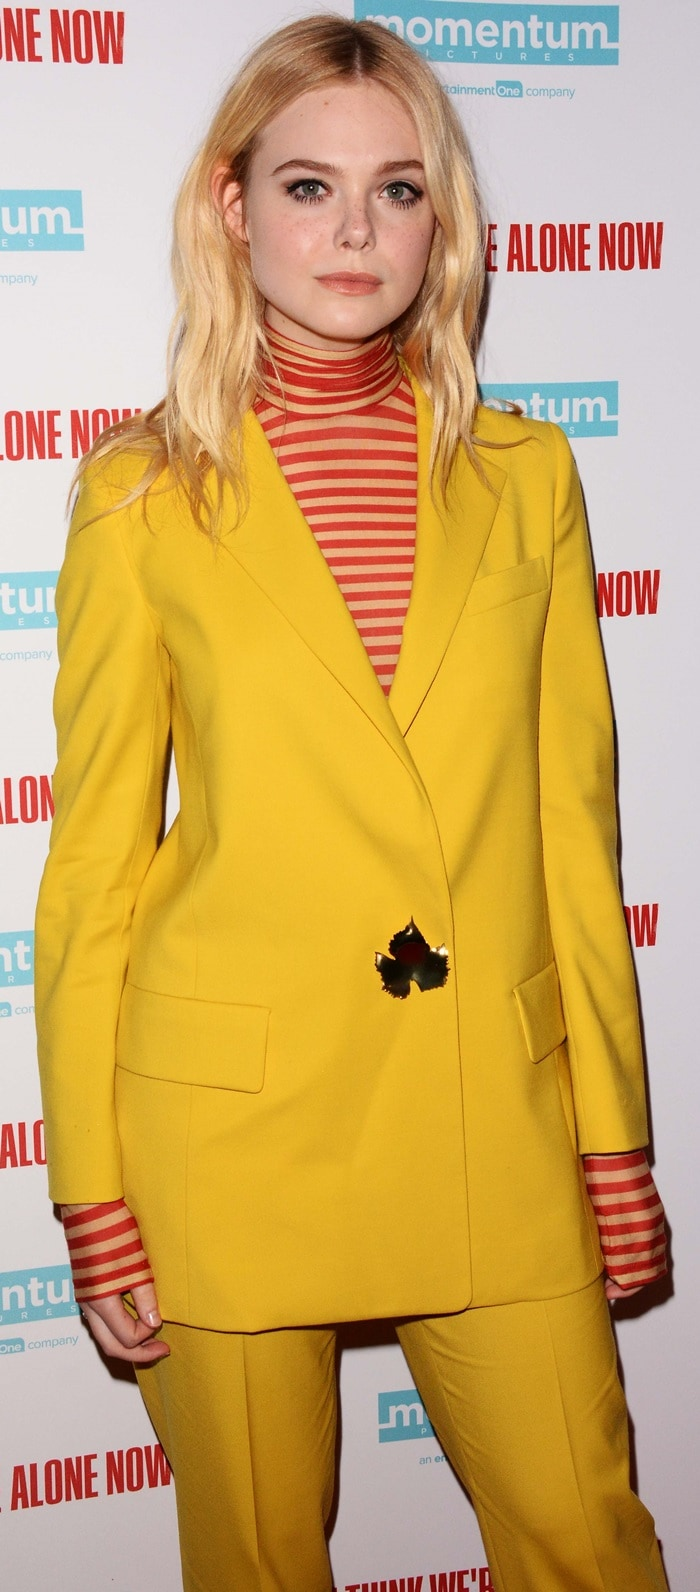 Elle Fanning wearing a yellow suit from the Oscar de la Renta Resort 2019 Collection